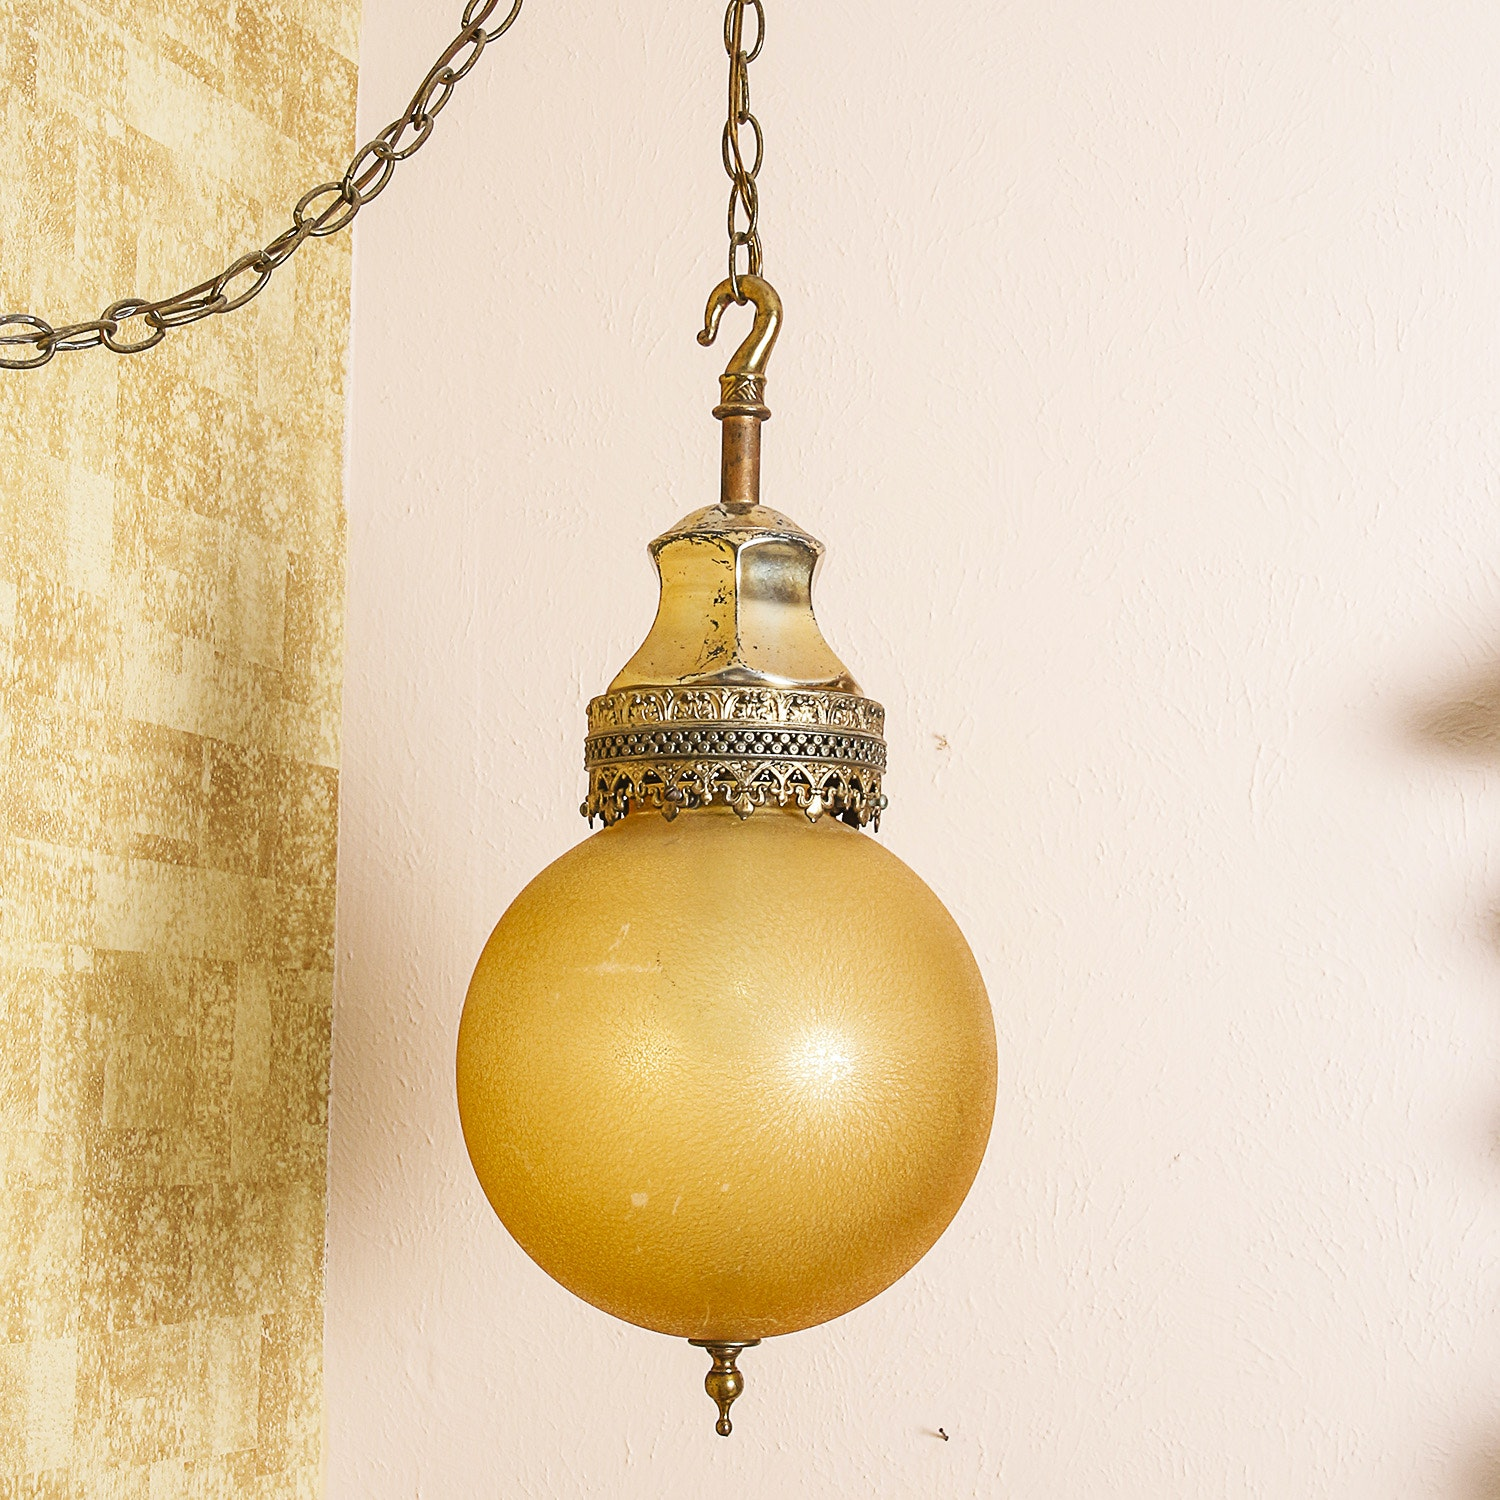 Vintage Moroccan-Style Pendant Swag Light Fixture